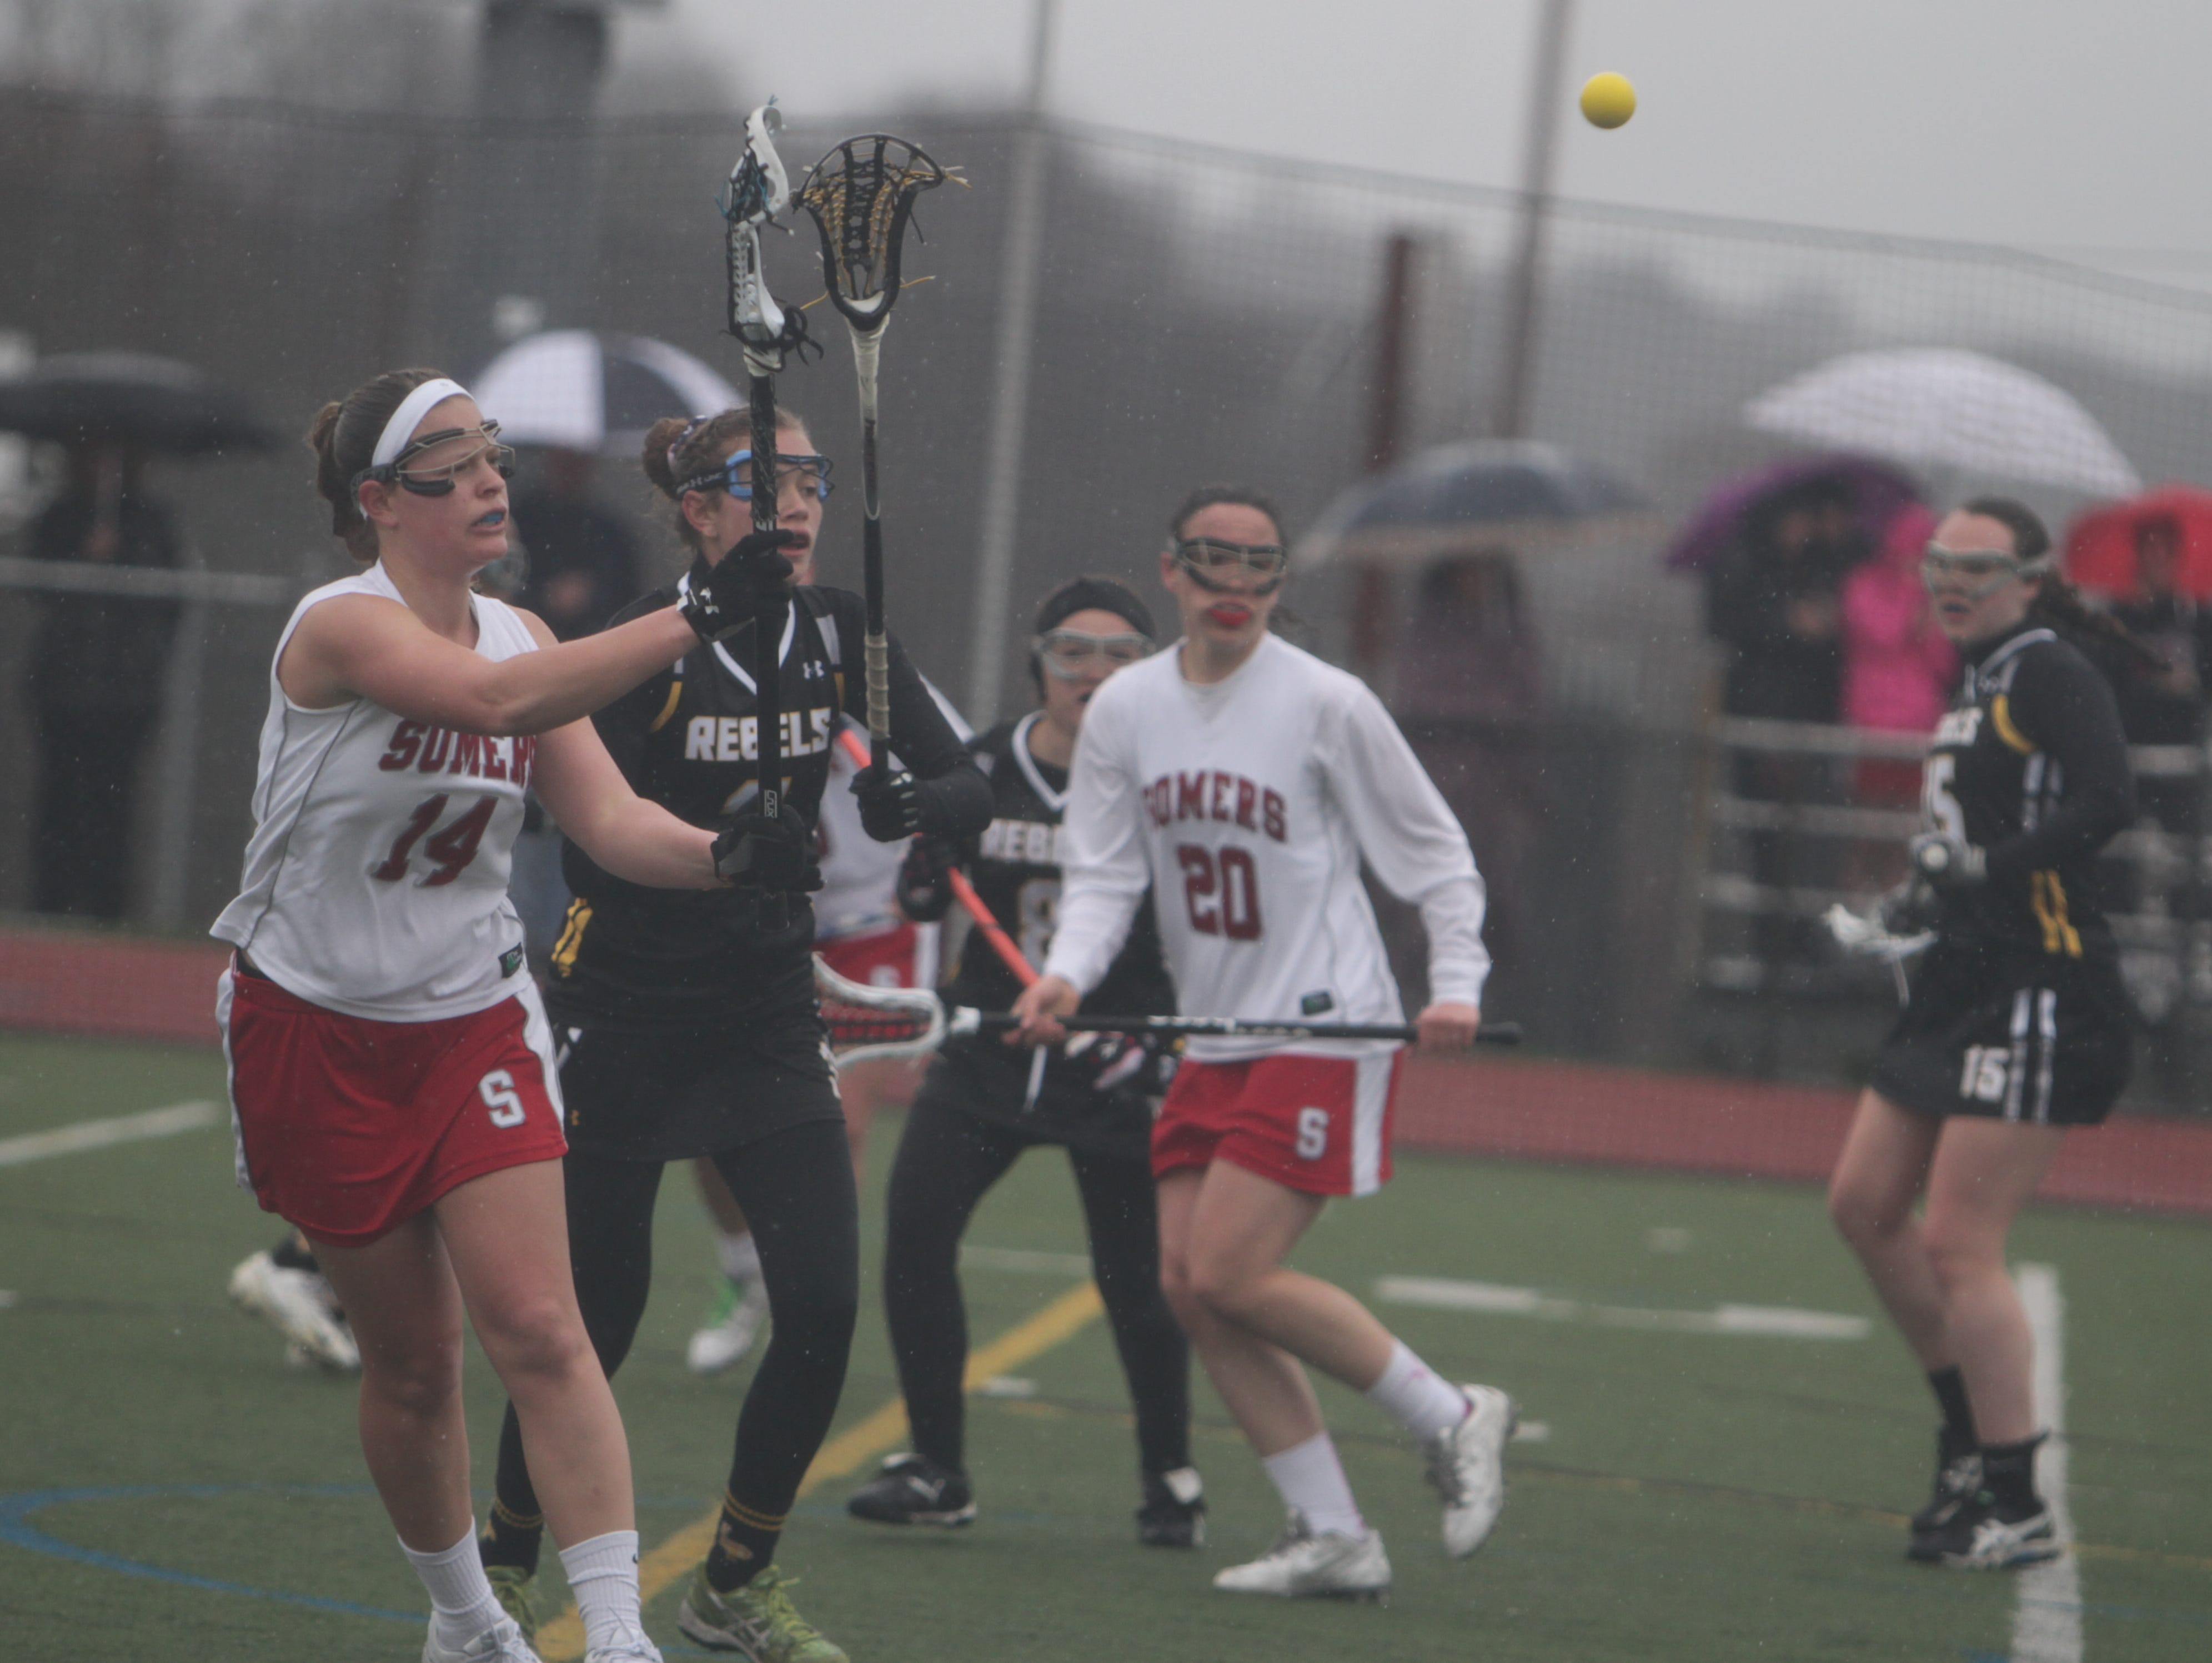 Somers' Izzy LaRocca (14) receives a pass during a Section 1 girls lacrosse game against Lakeland/Panas at Somers High School on Monday, March 28th, 2016. Somers won 15-8.